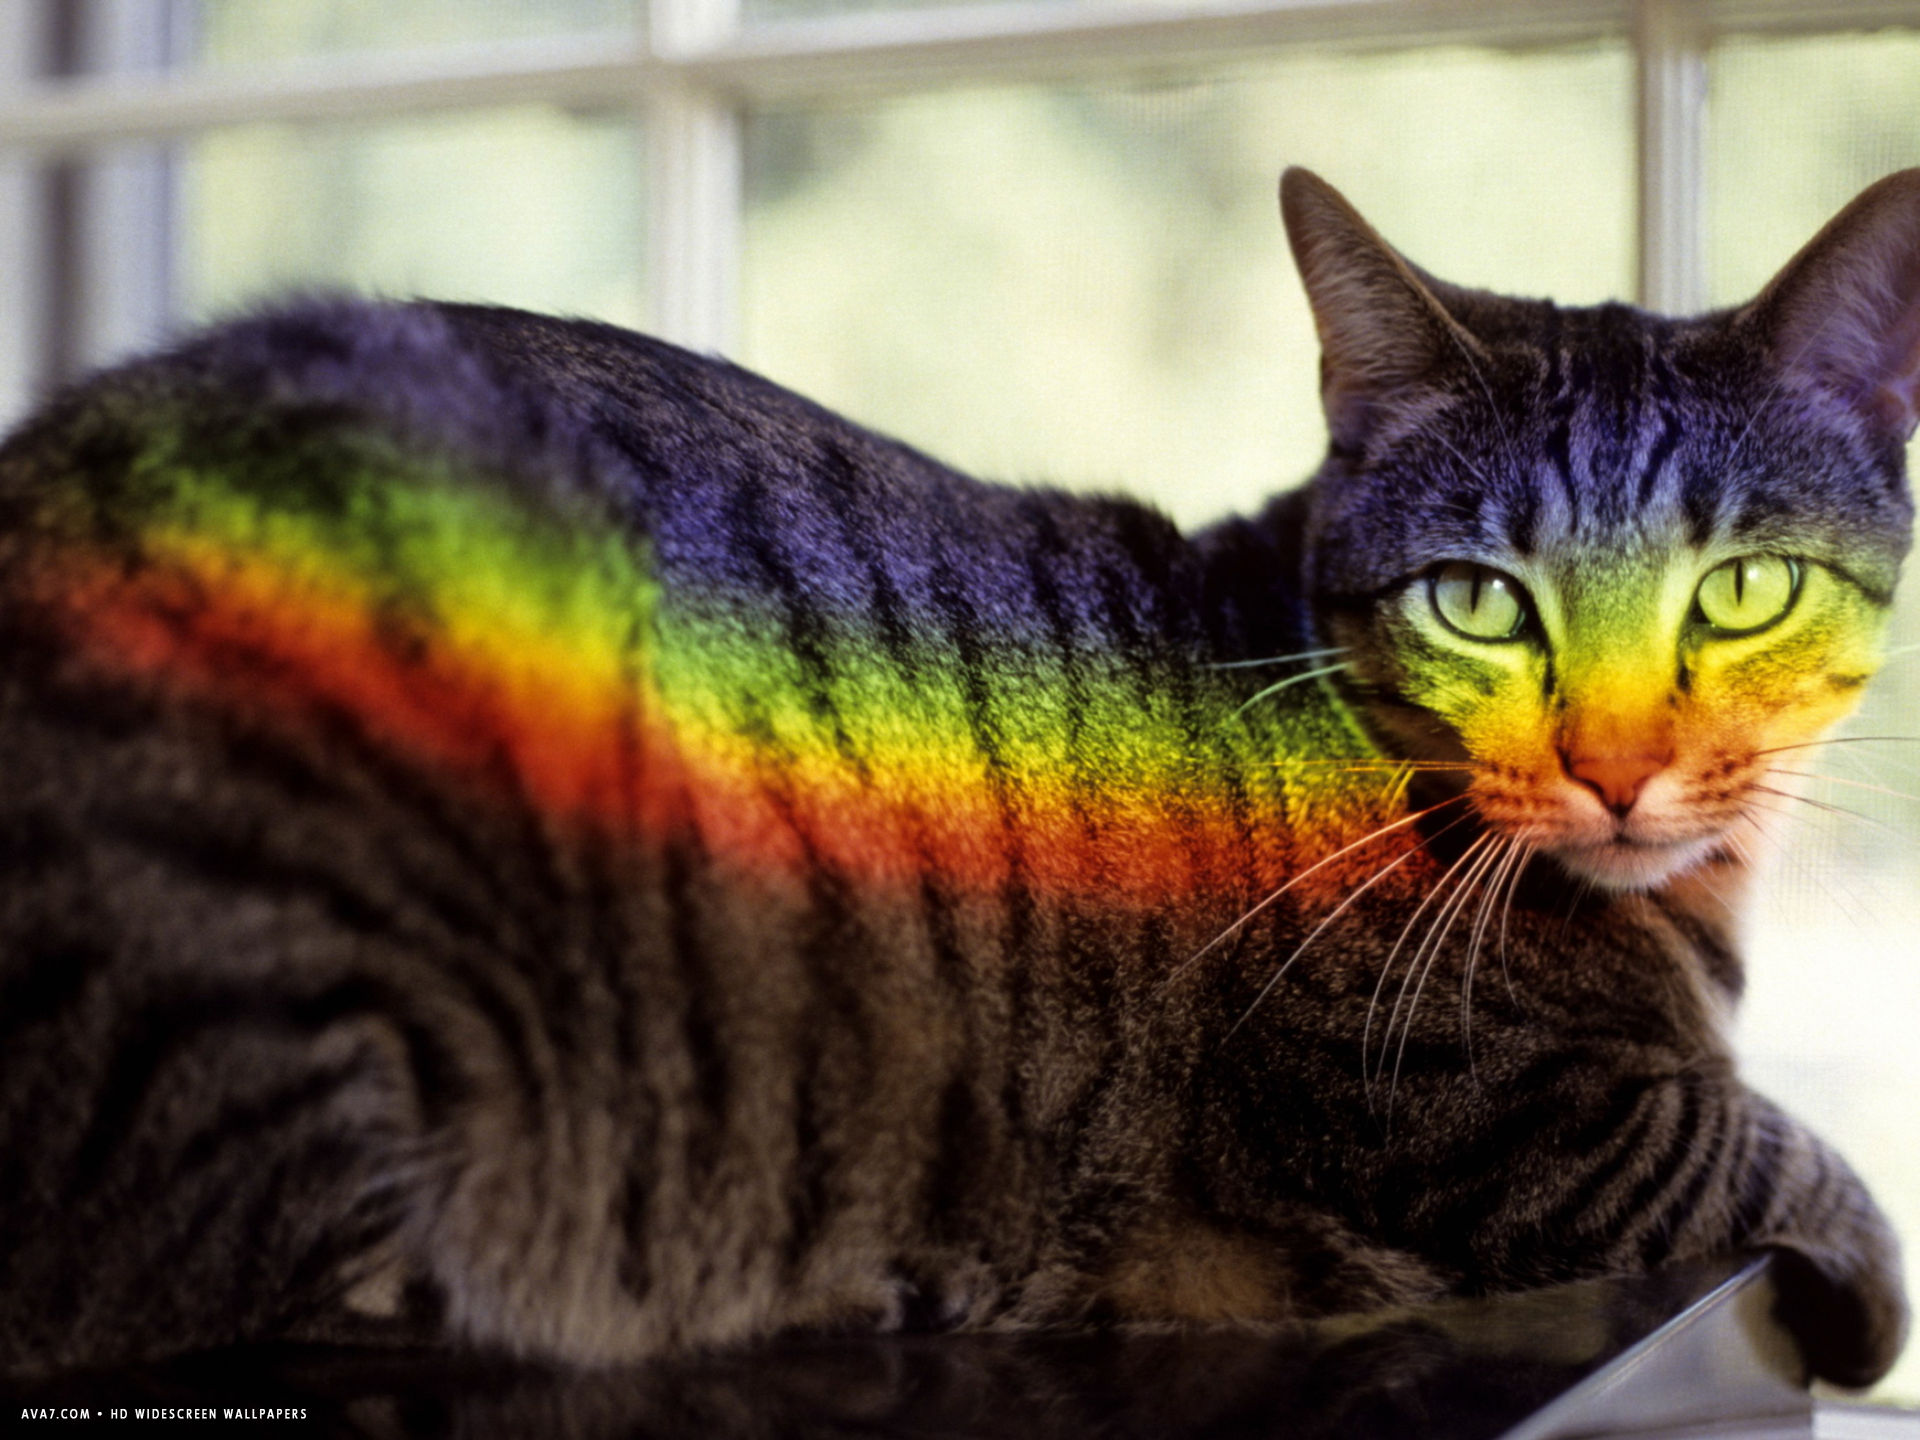 a window prism projects on a relaxed tabby cat like a private rainbow